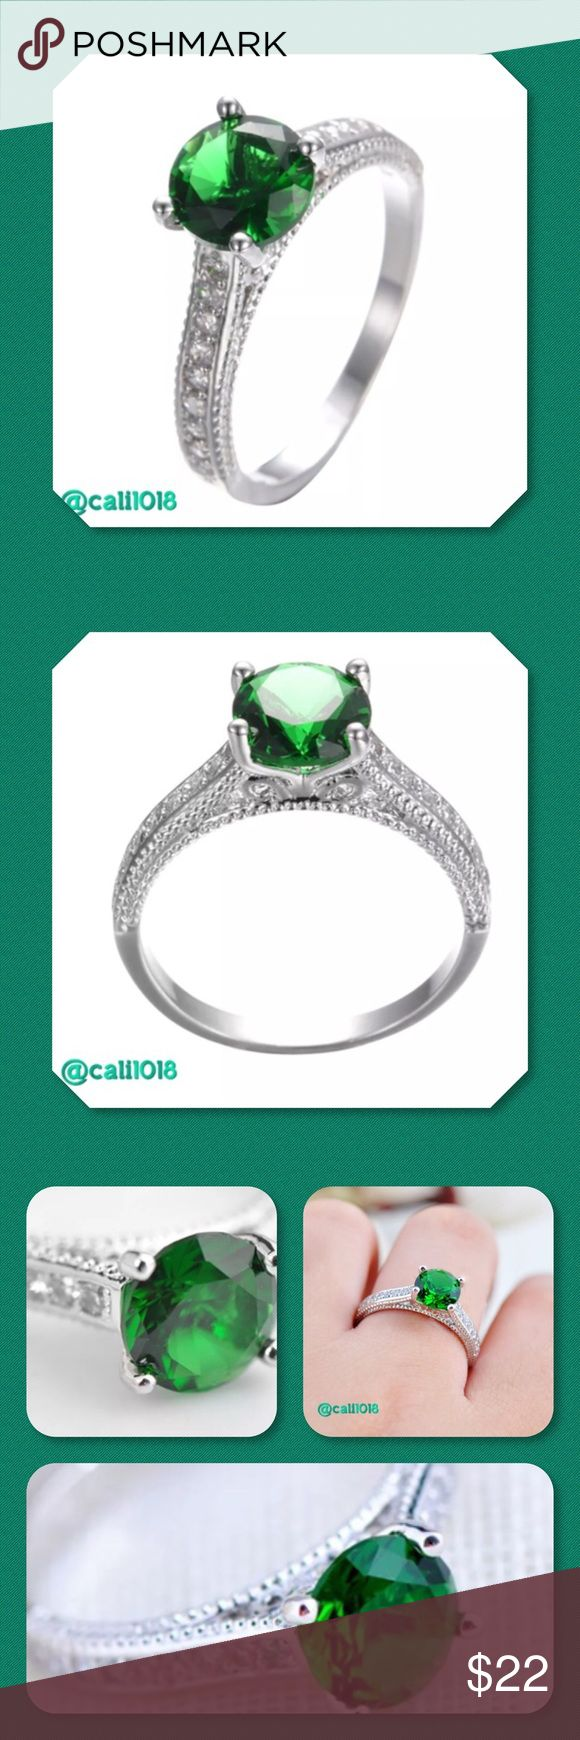 💠CLEARANCE 🆕 White Gold Filled Emerald Ring 💠💠 PRICE FIRM Item Description: Metal: White Gold Filled Main Stone: Green Emerald Ring Weight: 3g Ring Size(approx): 10 Glam Squad 2 You Jewelry Rings